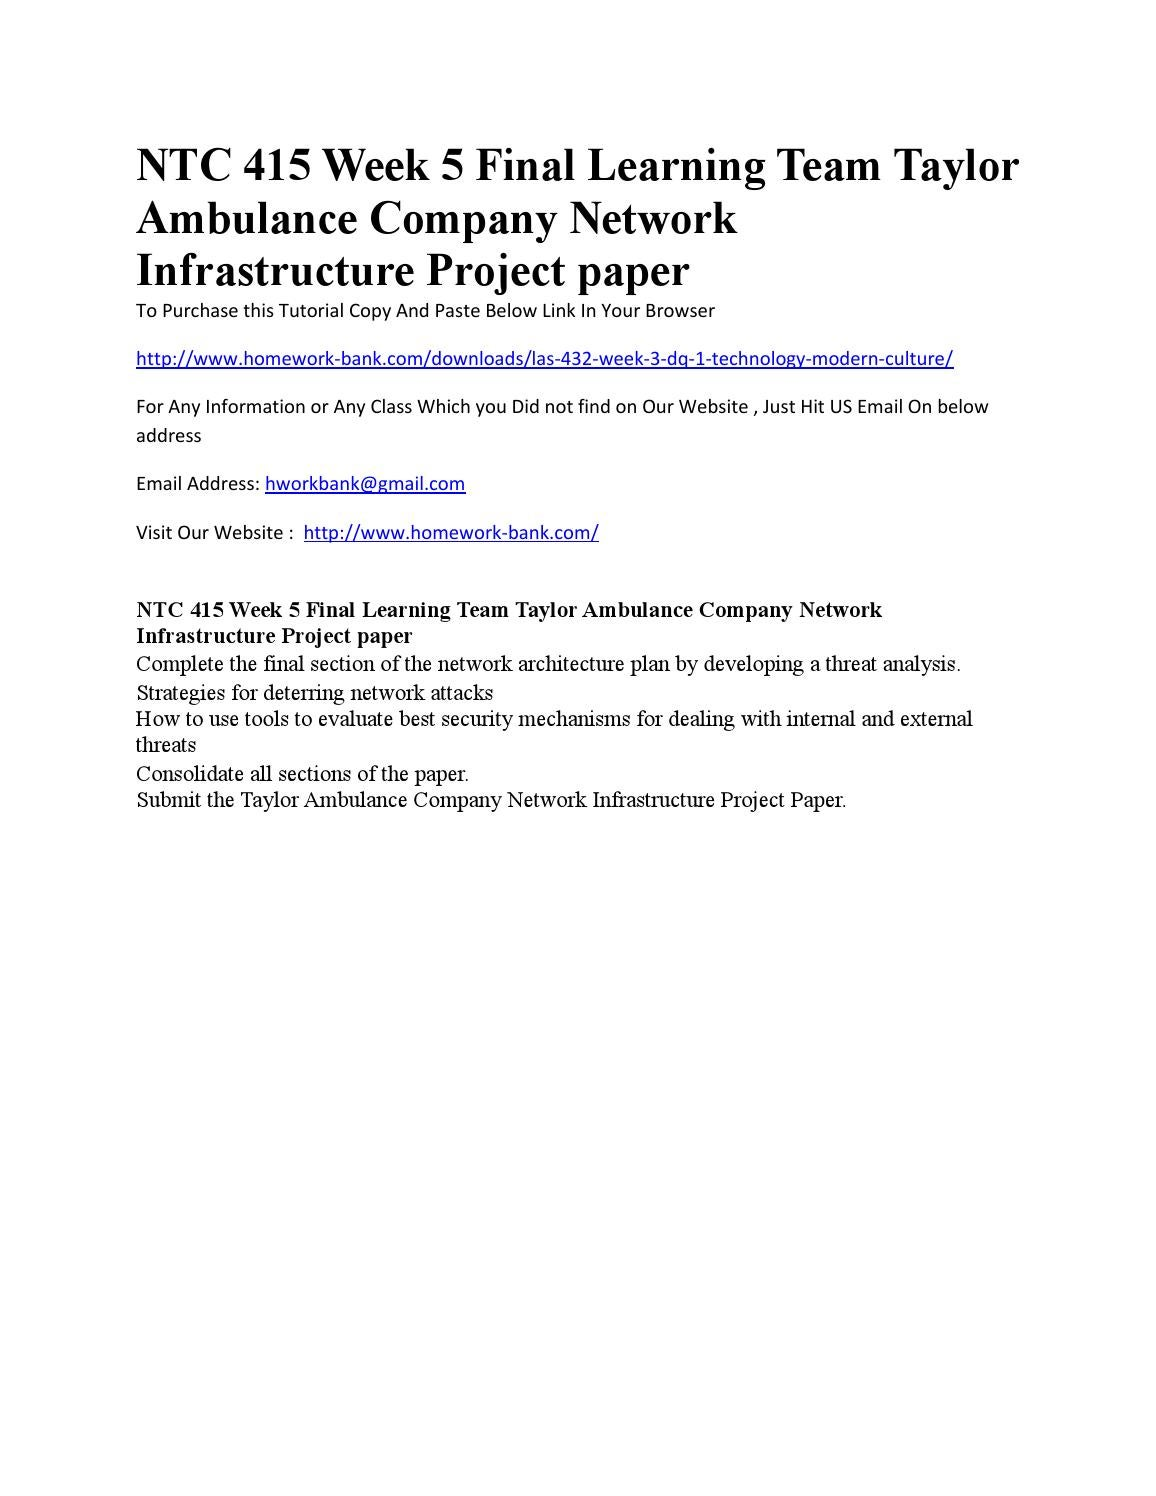 ntc 415 week 2 learning team Ntc 415 week 5 final learning team taylor ambulance company network infrastructure project paper complete the final section of the network architecture plan by developing a threat analysis strategies for deterring network attacks.